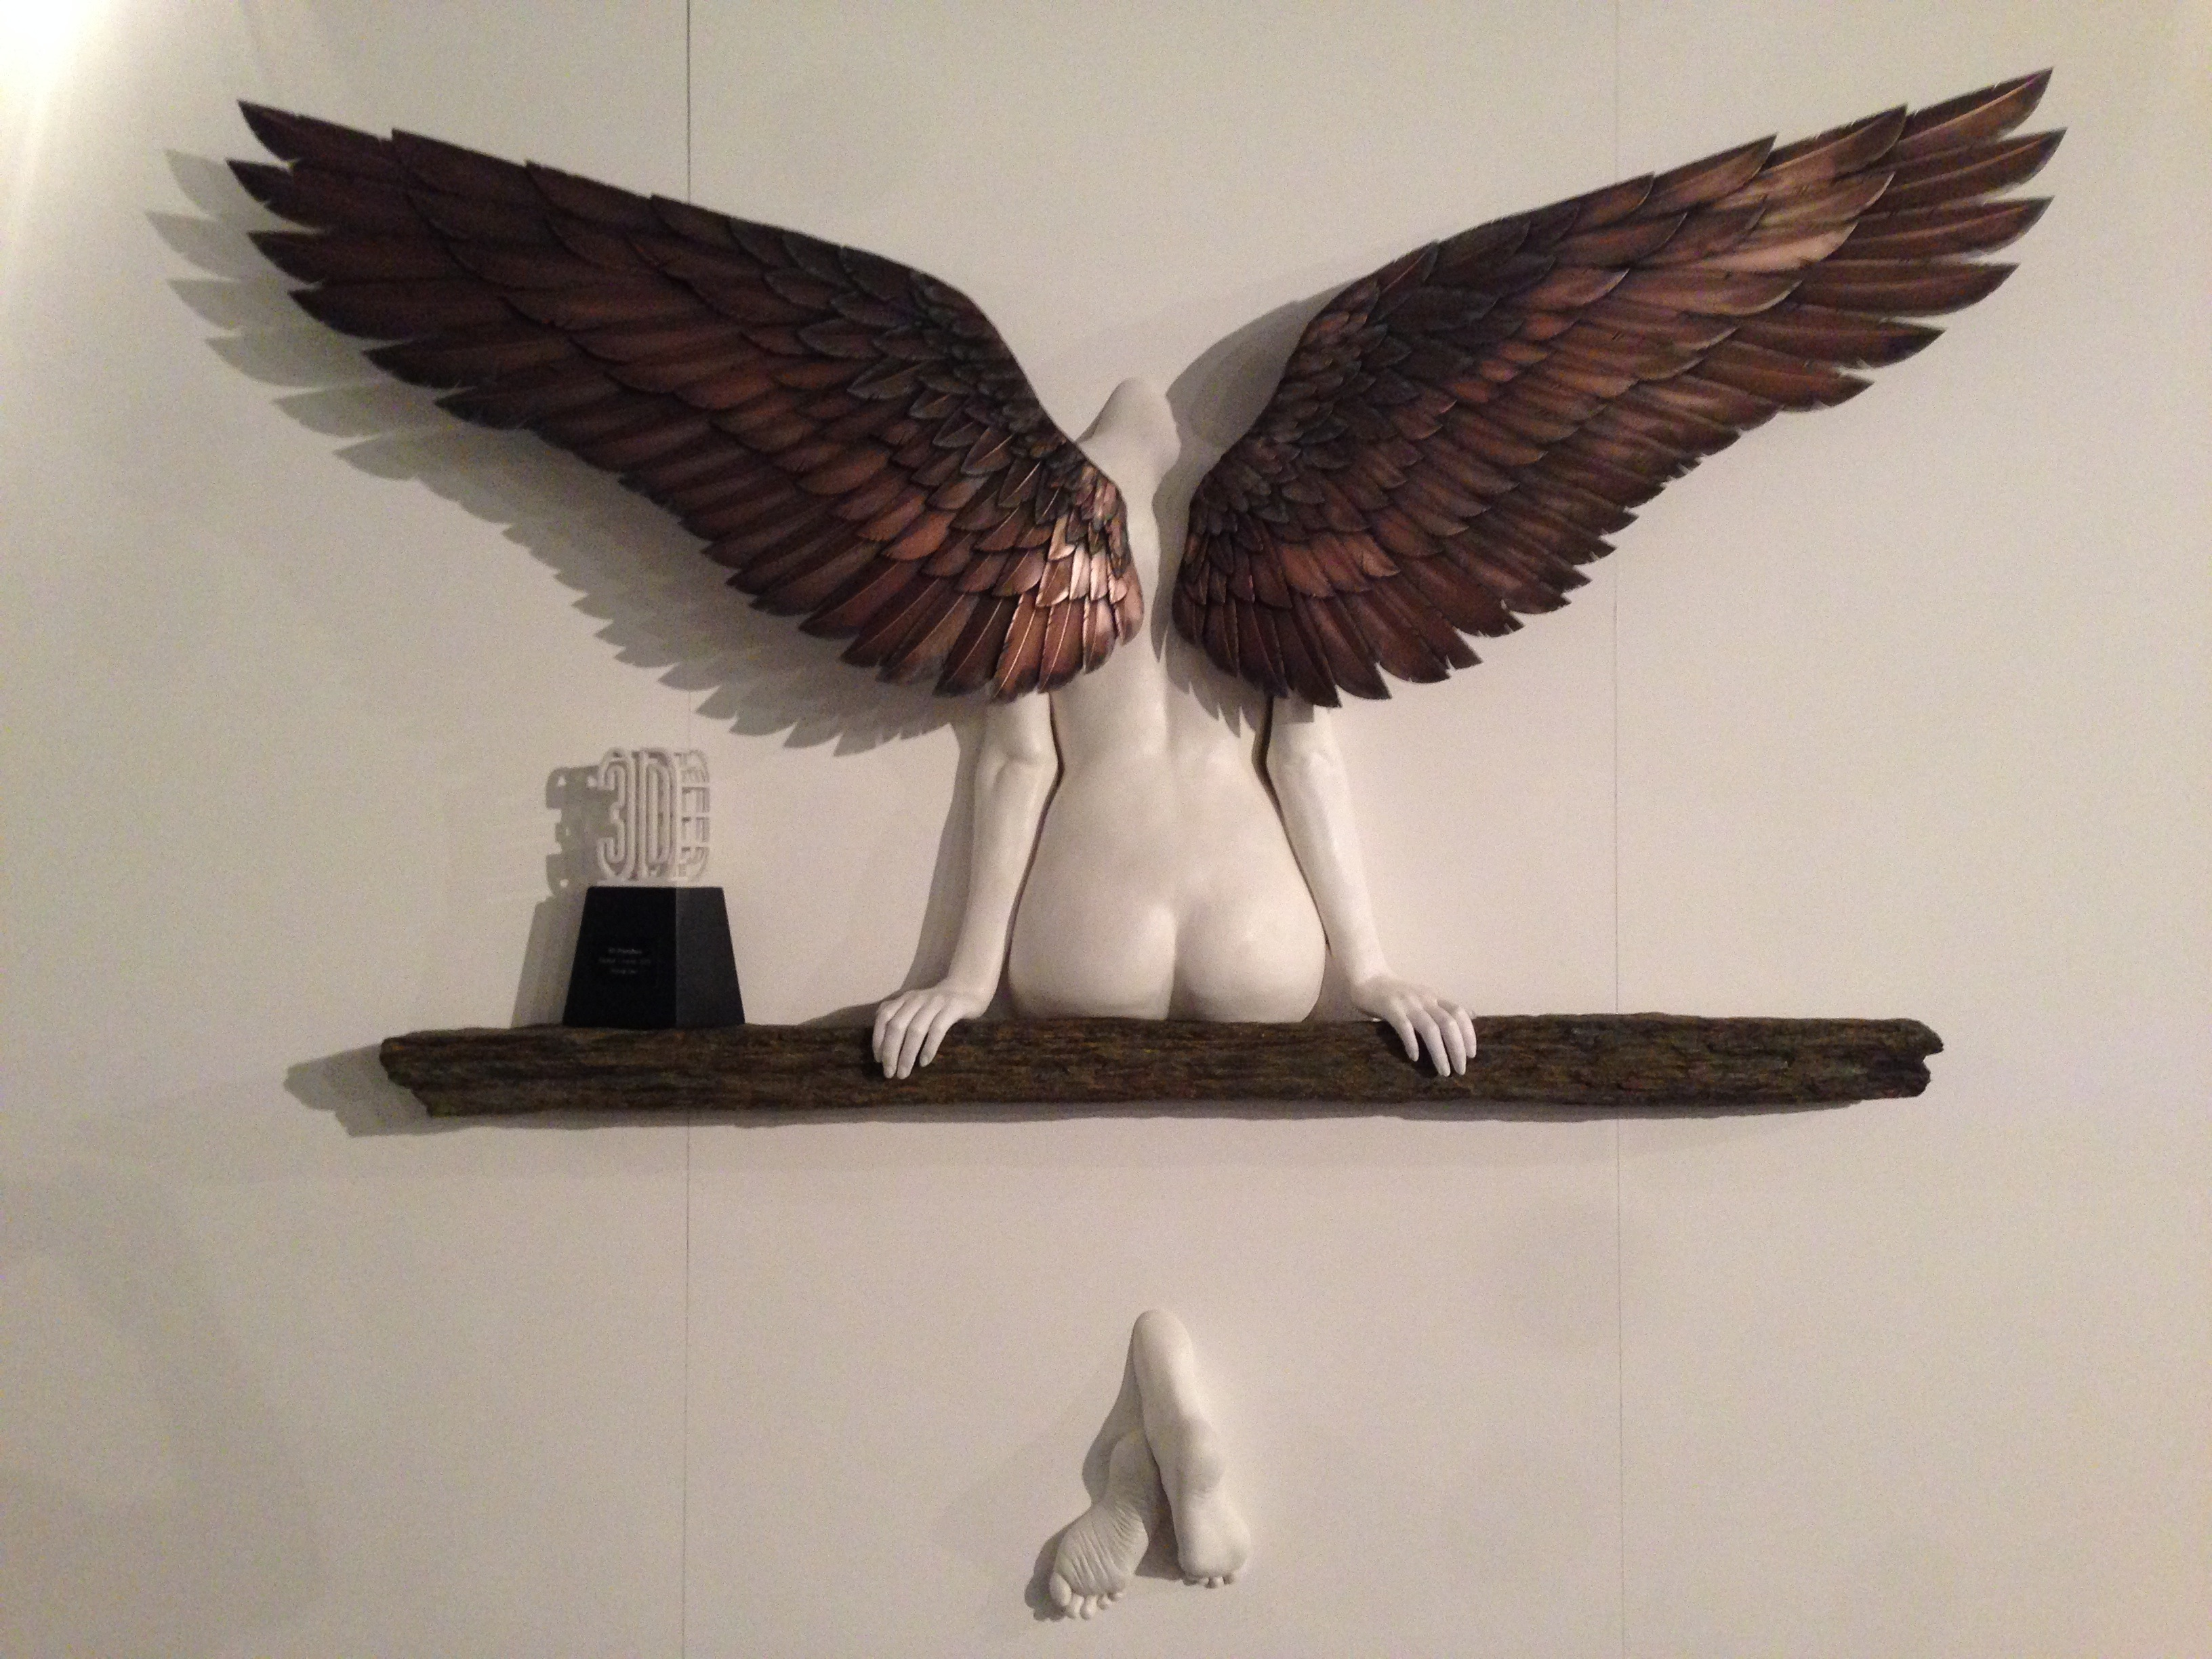 hybrid 3D Print show – Icarus had a sister